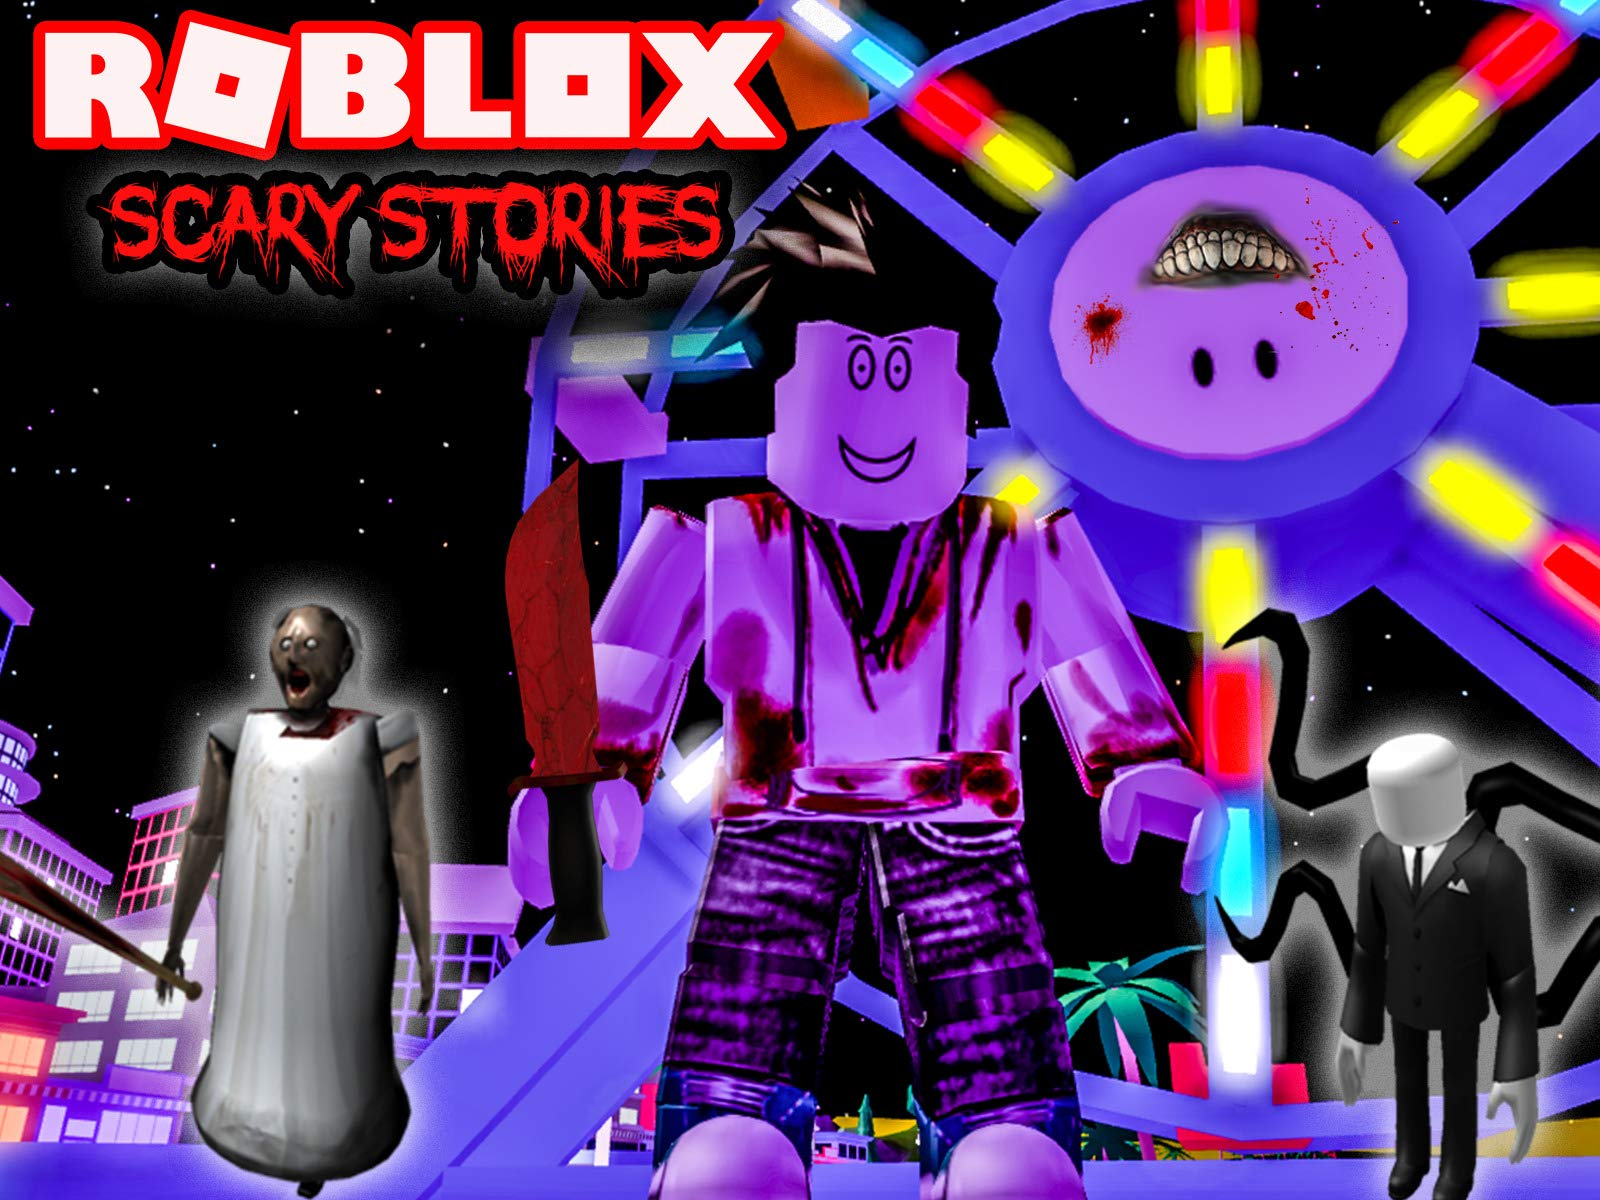 Amazon co uk: Watch Clip: Roblox Scary Stories | Prime Video